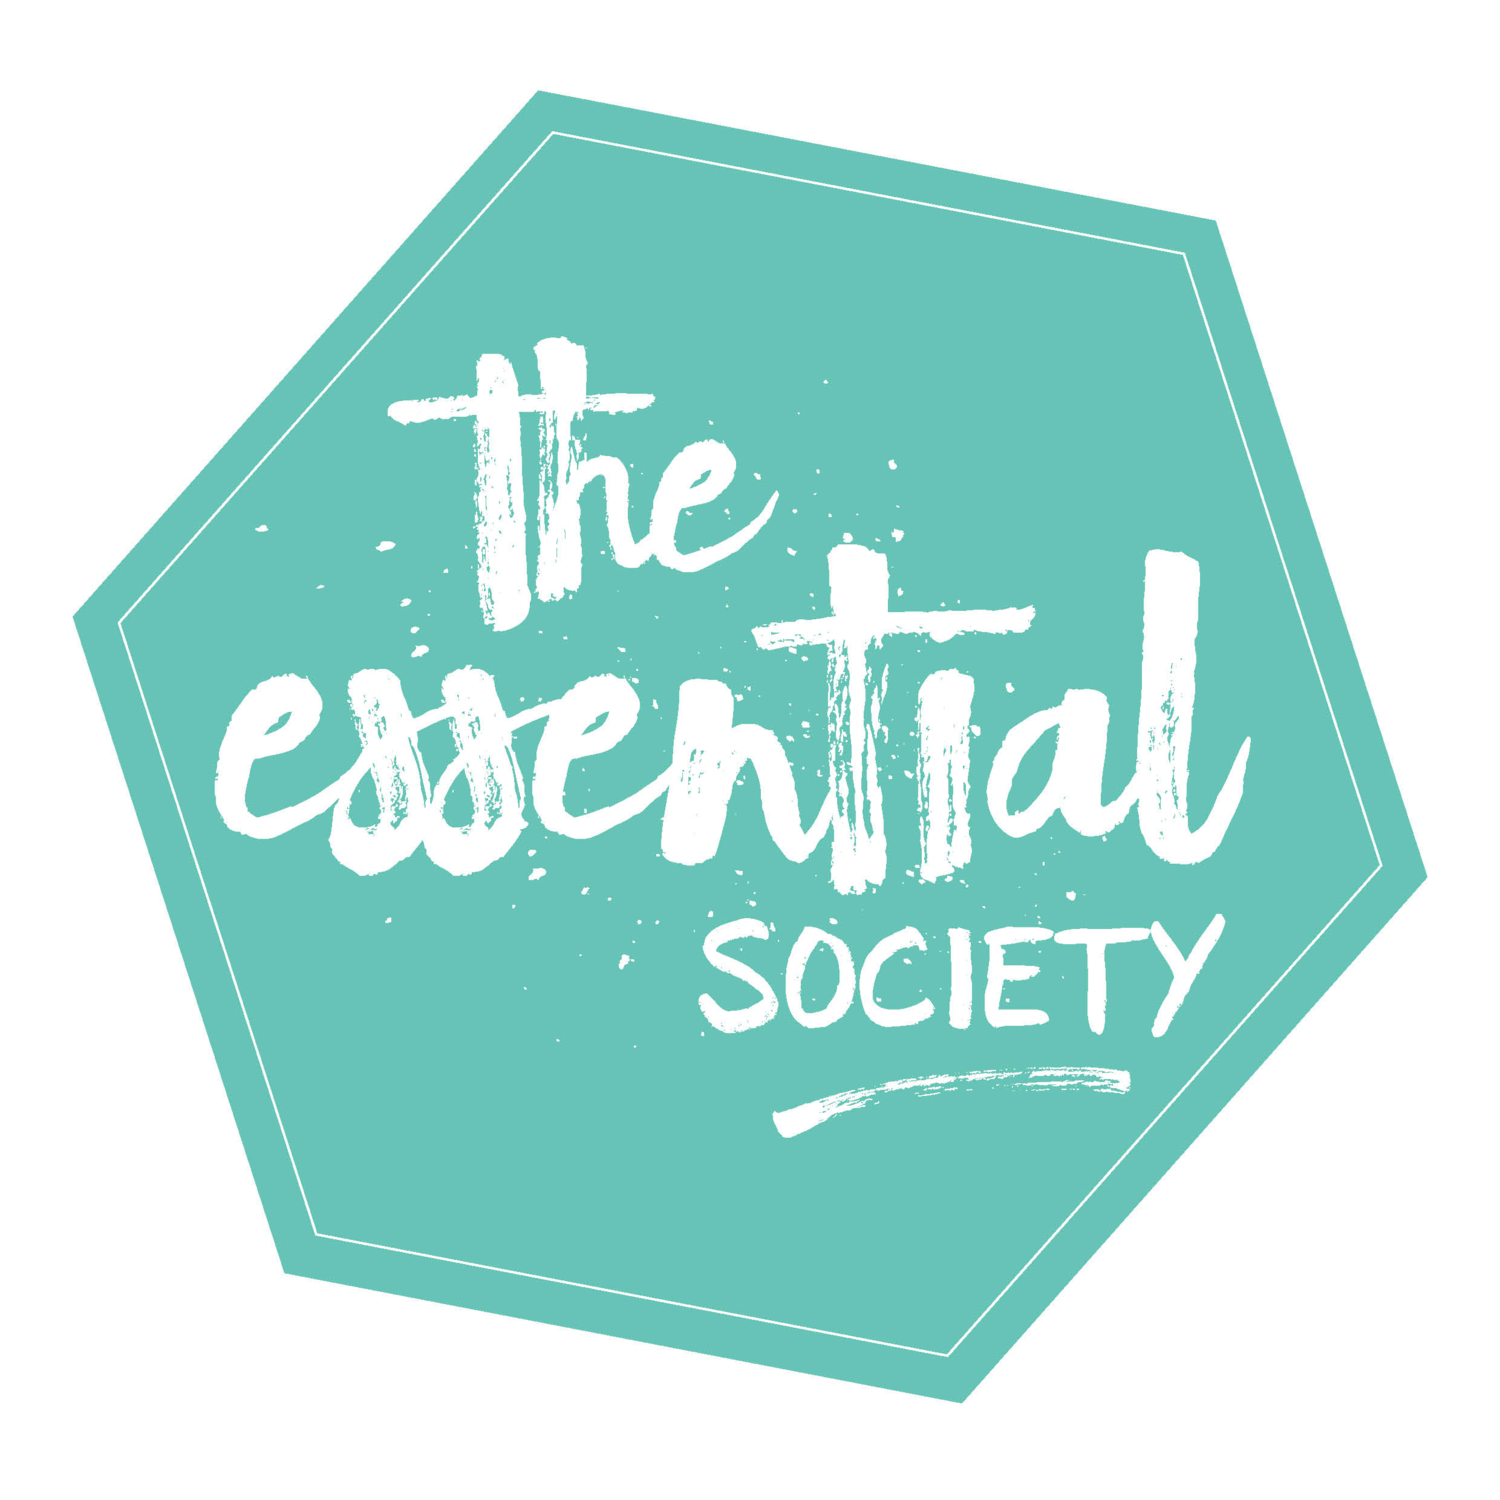 THE ESSENTIAL SOCIETY